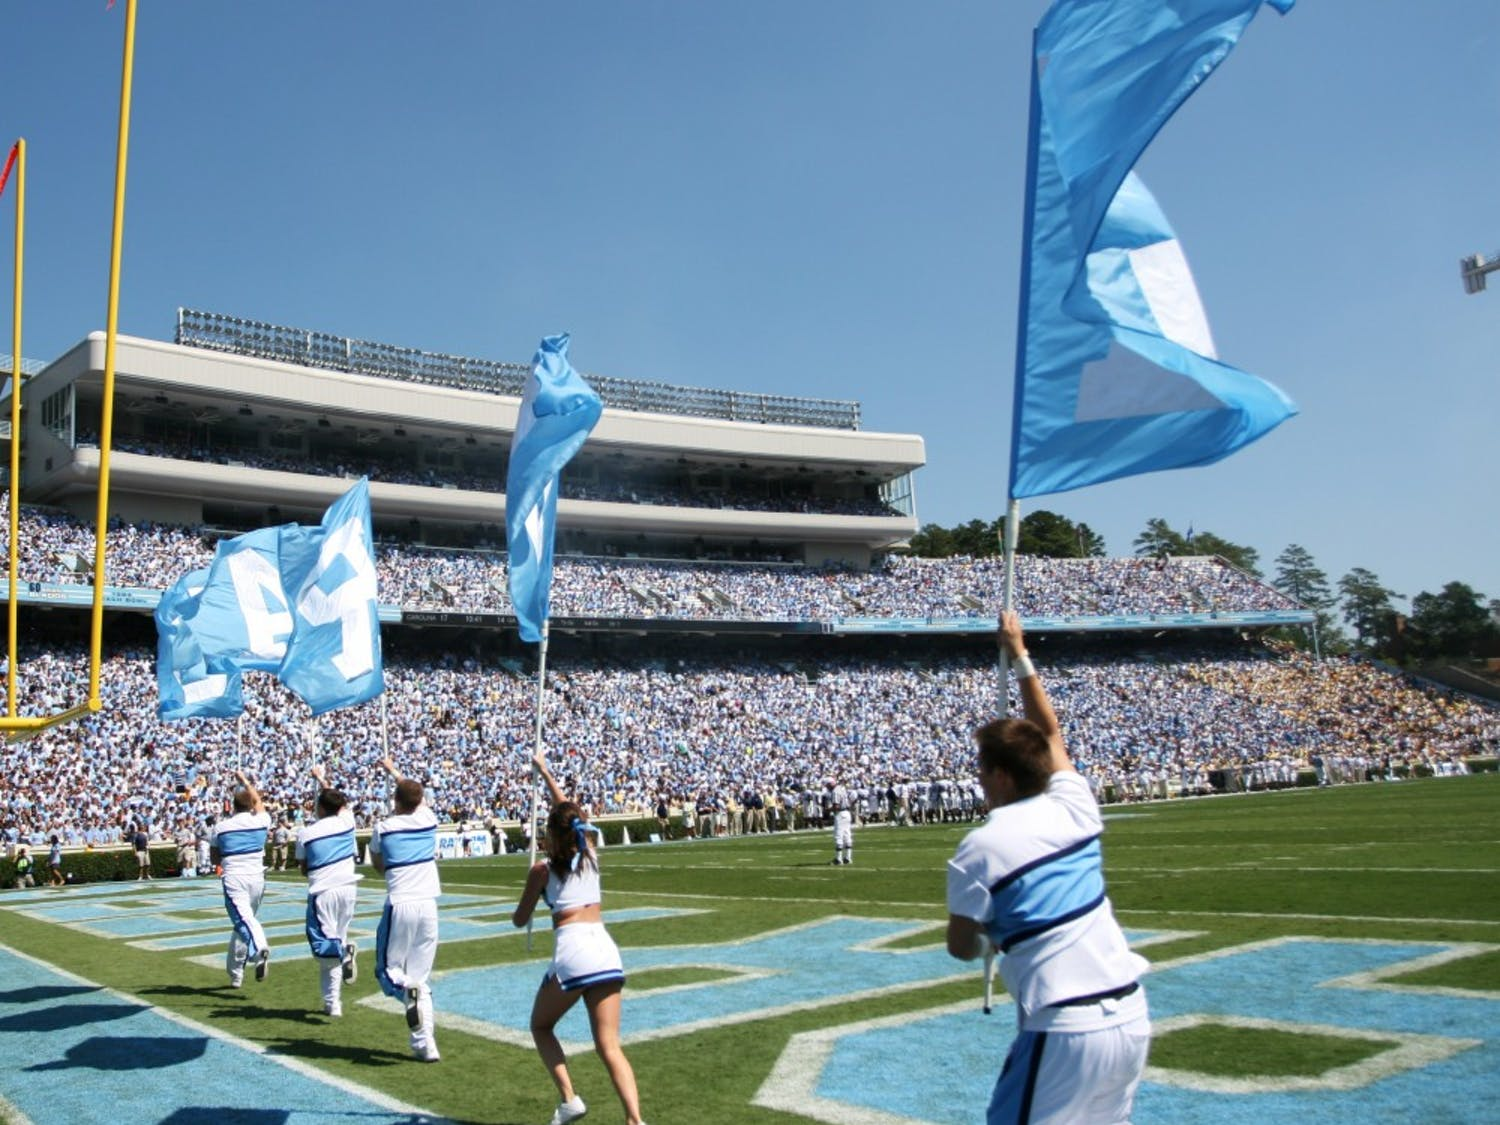 The Georgia Tech Yellow Jackets defeated UNC 30-24 at Kenan Stadium on Saturday, September 18, in UNC's home opener.